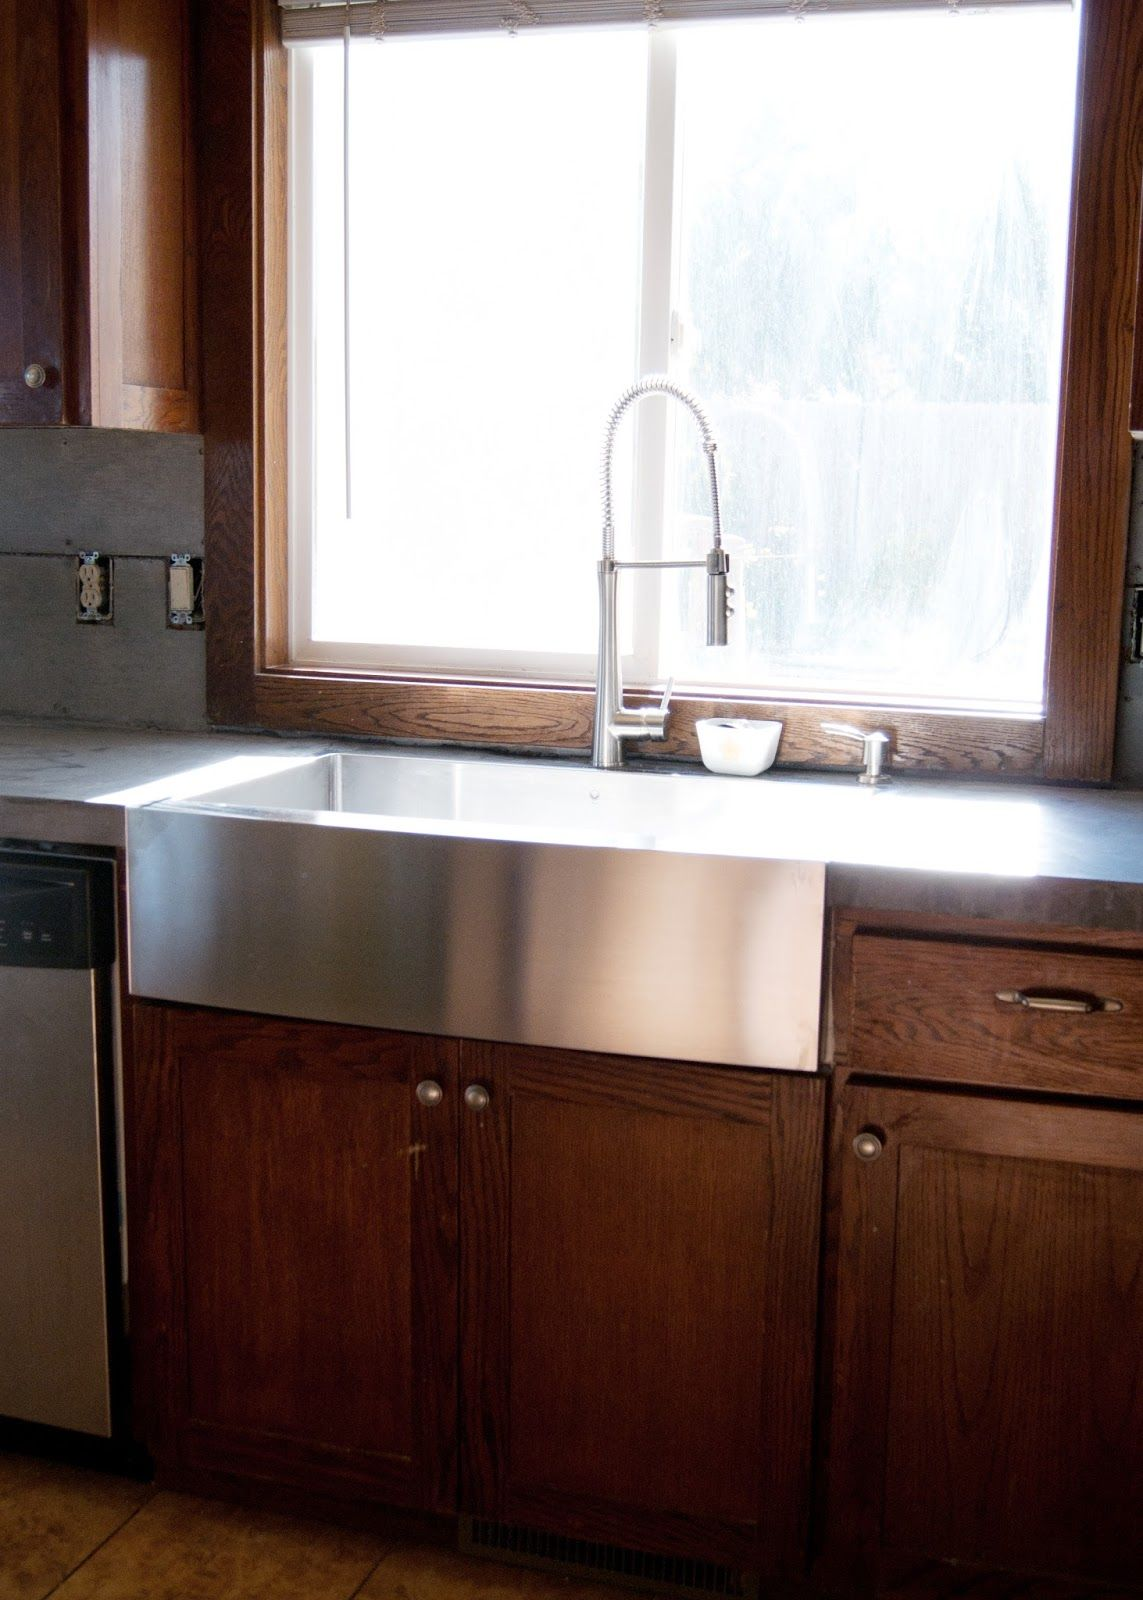 New Stainless Steel Apron Front Sink + how we installed it